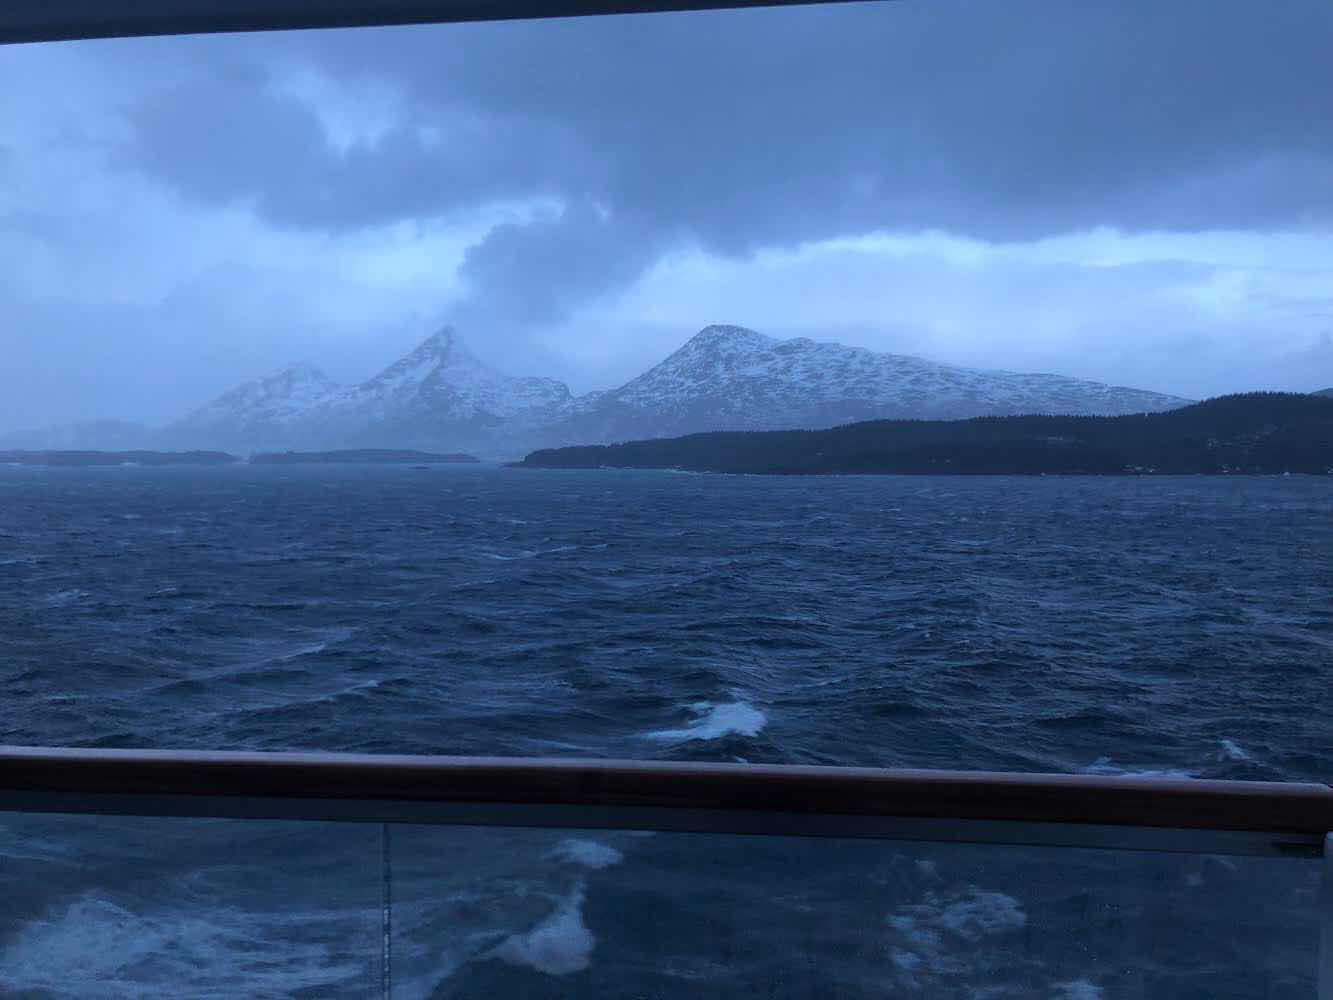 At sea off the coast of Norway on the Viking Sky(Source: Palmia Observatory)